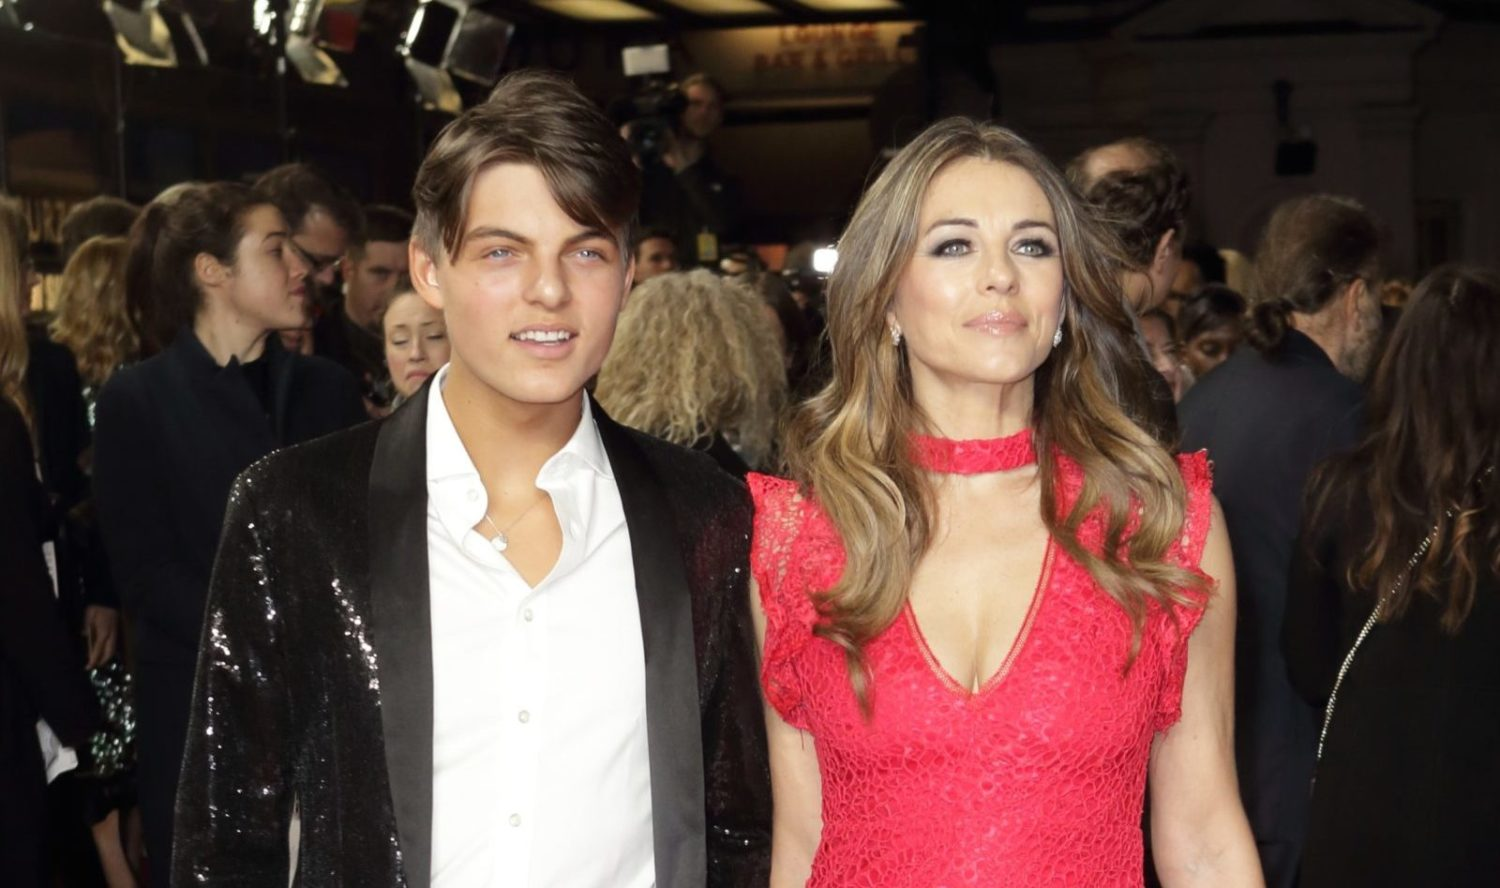 Elizabeth Hurley and son Damian share touching tributes to Steve Bing after his death